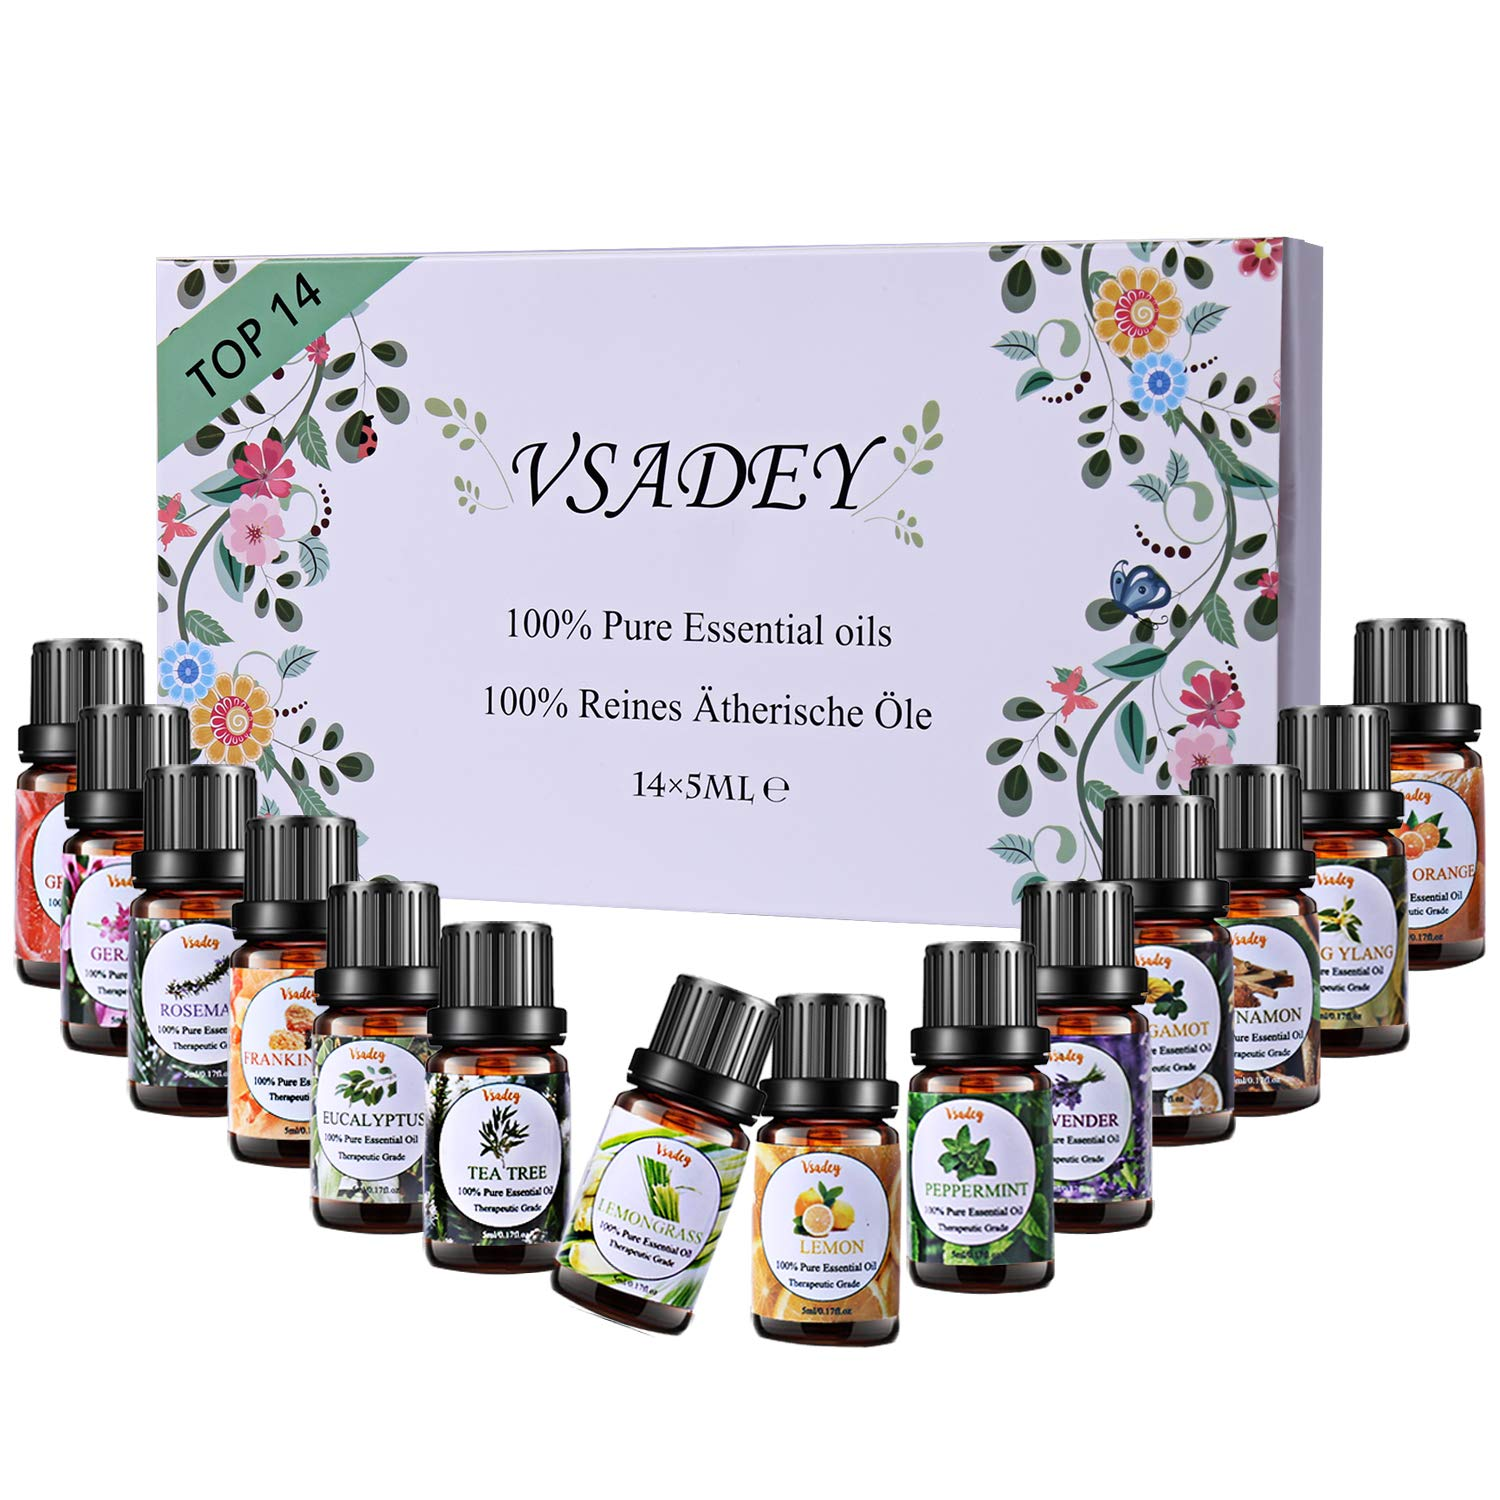 Vsadey Essential Oils Set 100% Pure Therapeutic Grade Organic Aromatherapy Scented Oils Kit for Diffuser, Humidifier, Bath